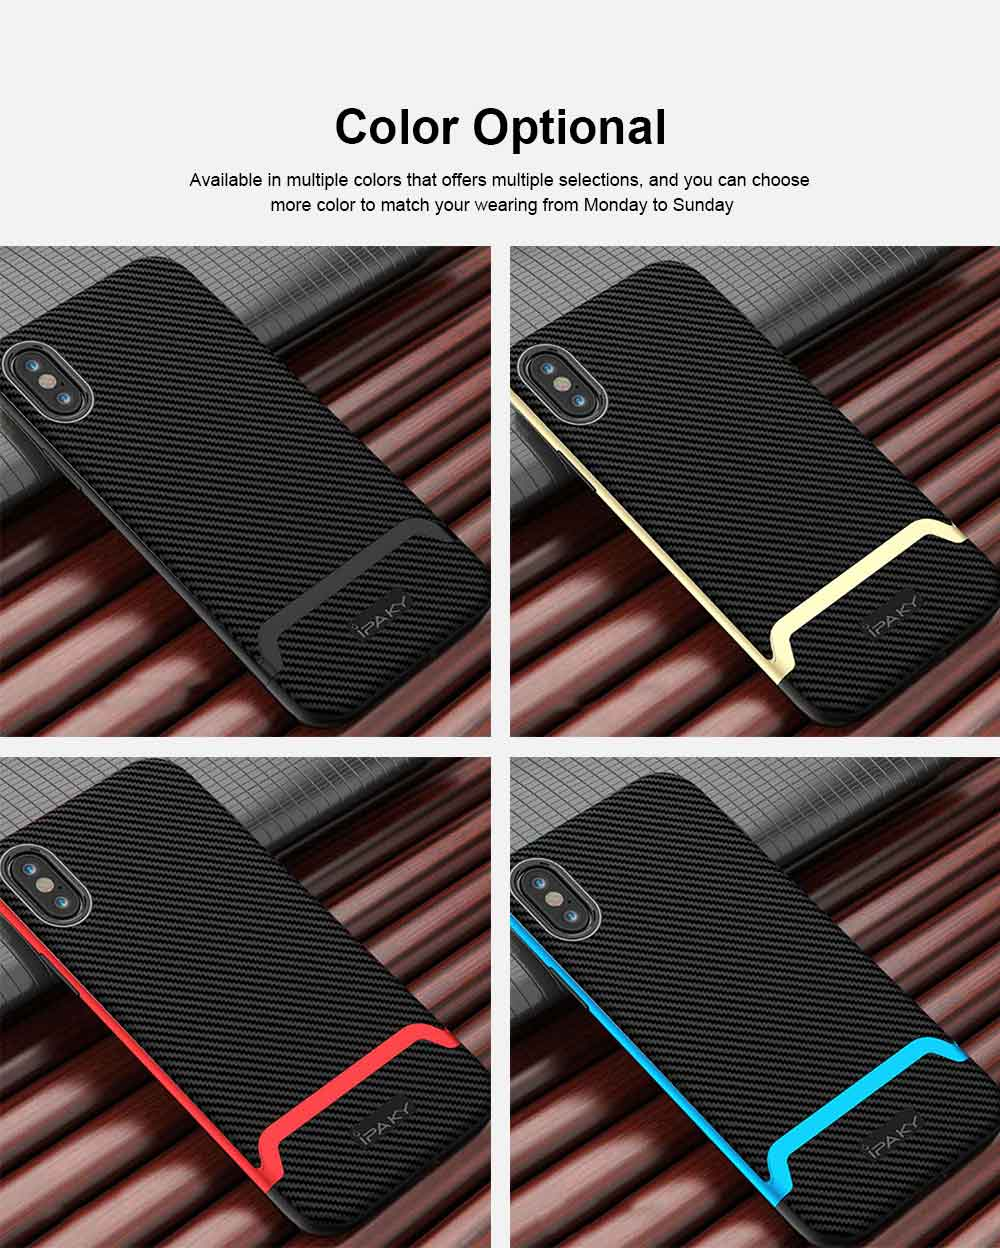 Corrugated Texture Phone Case Compatible for iPhone X/XS/Max, Anti-scratch Protective Cover for Apple iPhone 5.8-6.5 inch Universal Phone Cover 6